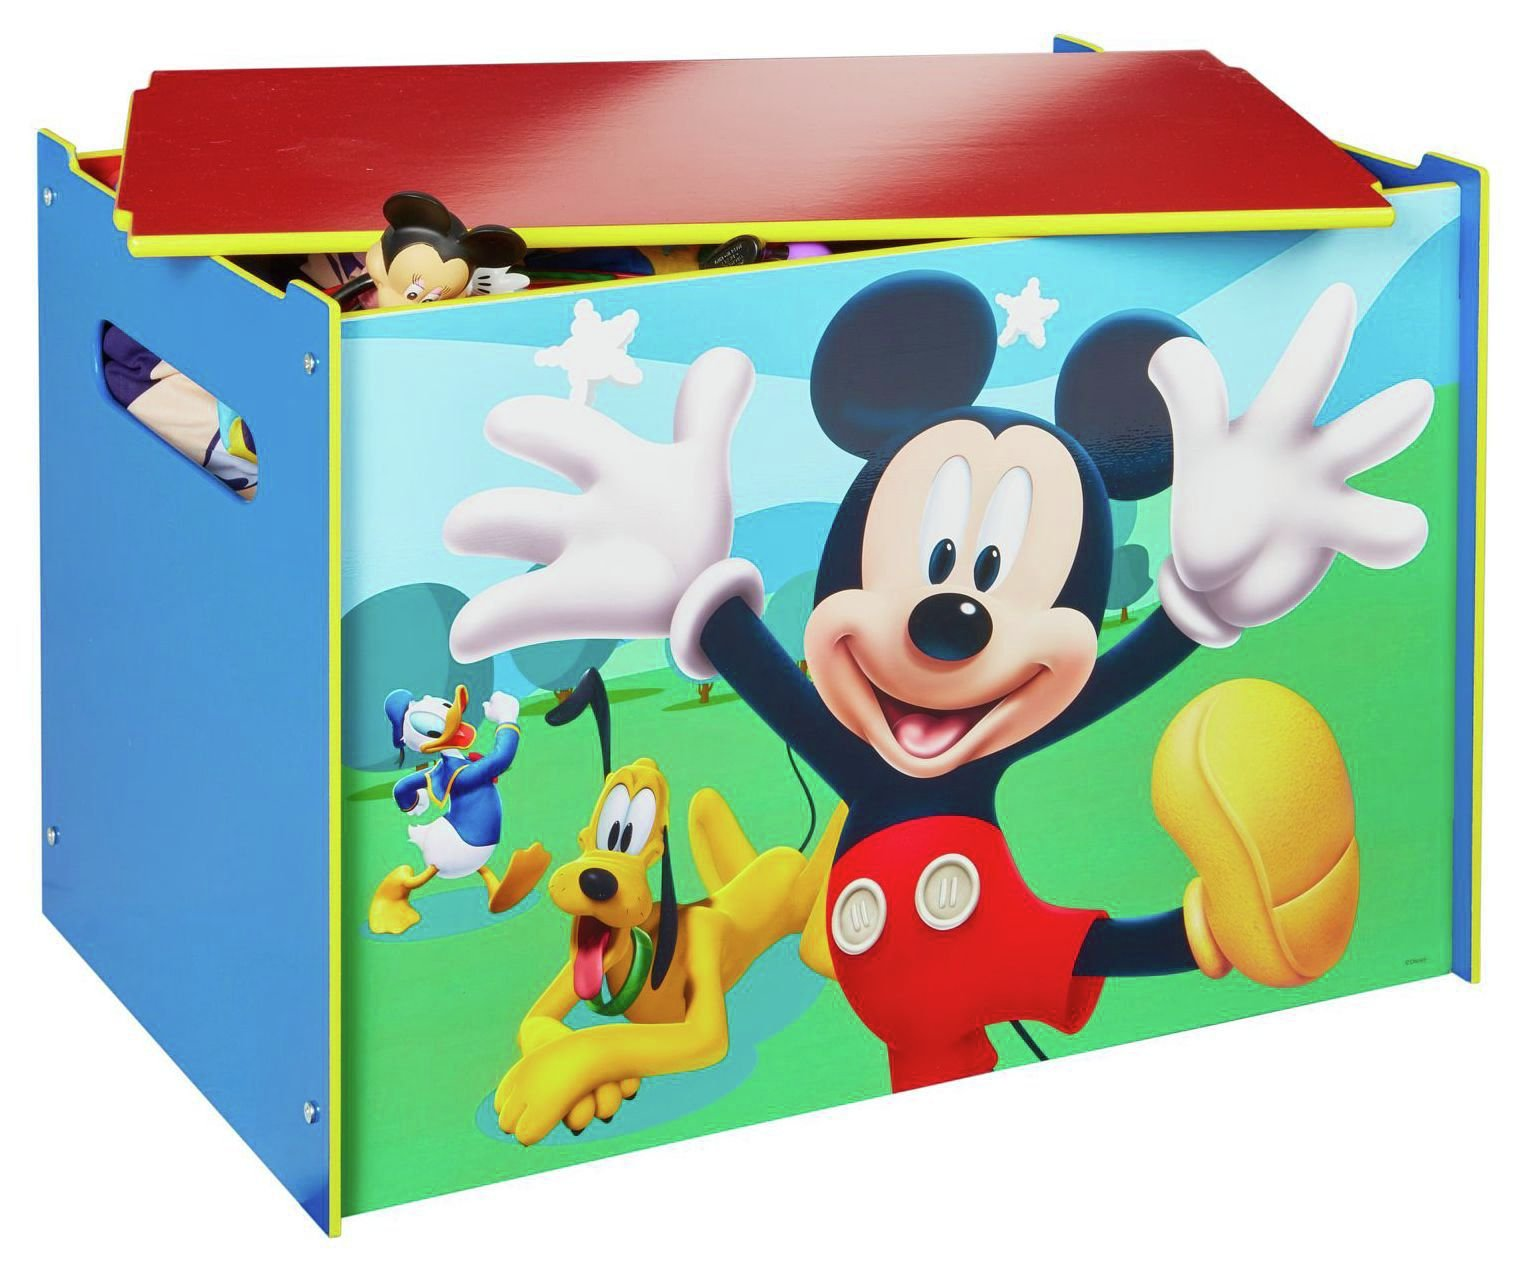 Image of Disney Mickey Mouse Toy Box